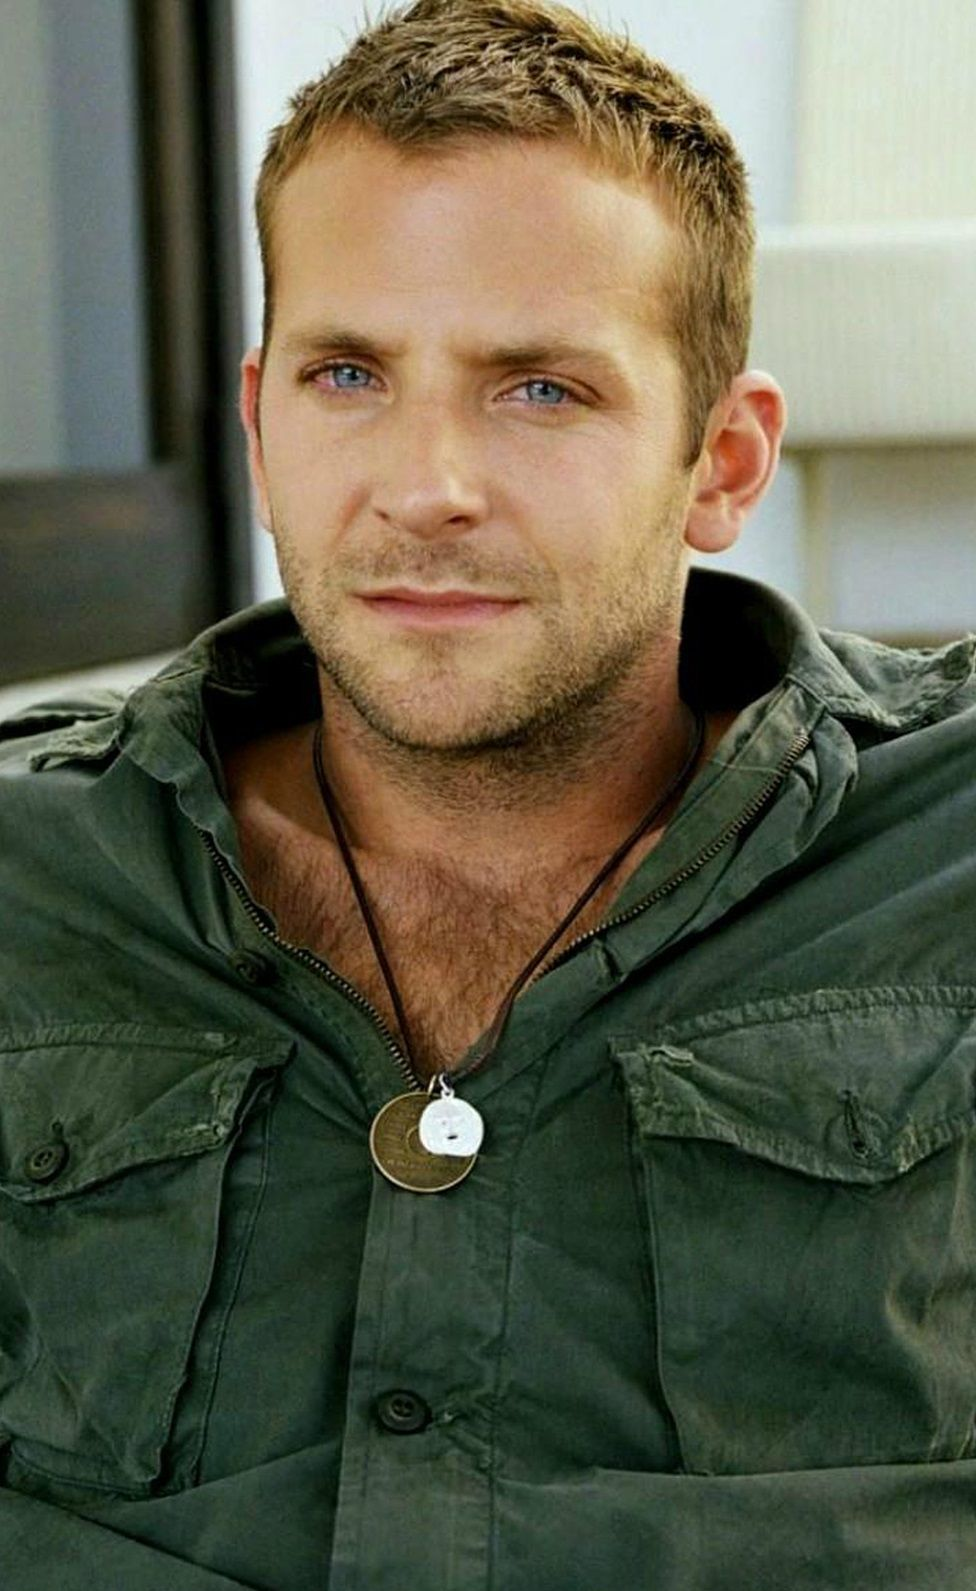 Awe Inspiring Bradley Cooper I Like The Buzz Cut Best Just For Me Hairstyles For Men Maxibearus